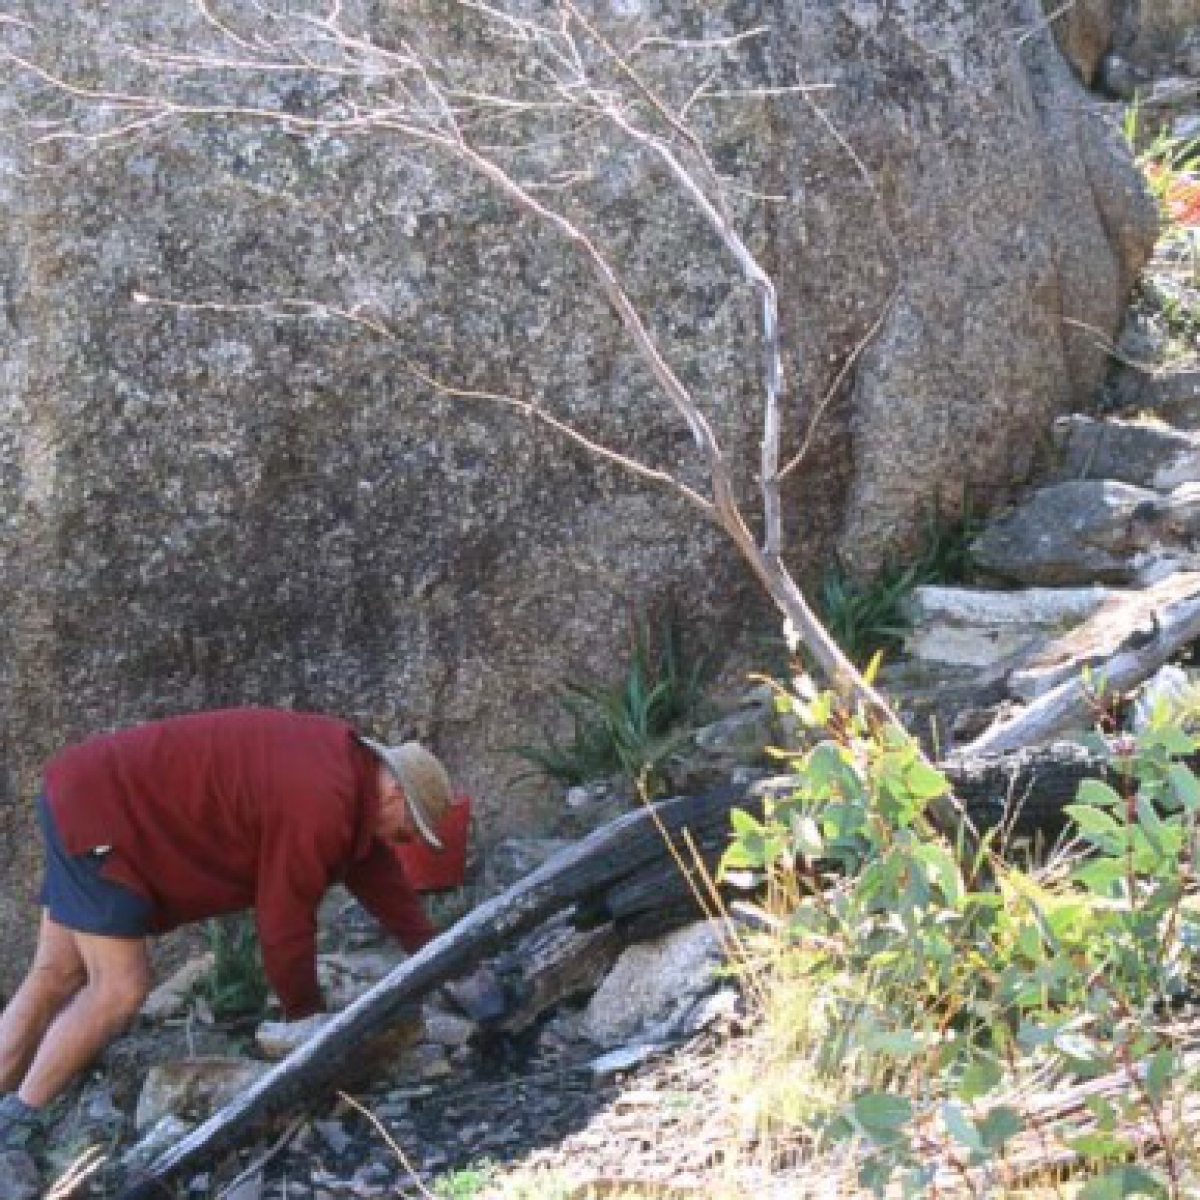 Mike & Steve try their hand at stone masonry on the Yerrabi Track